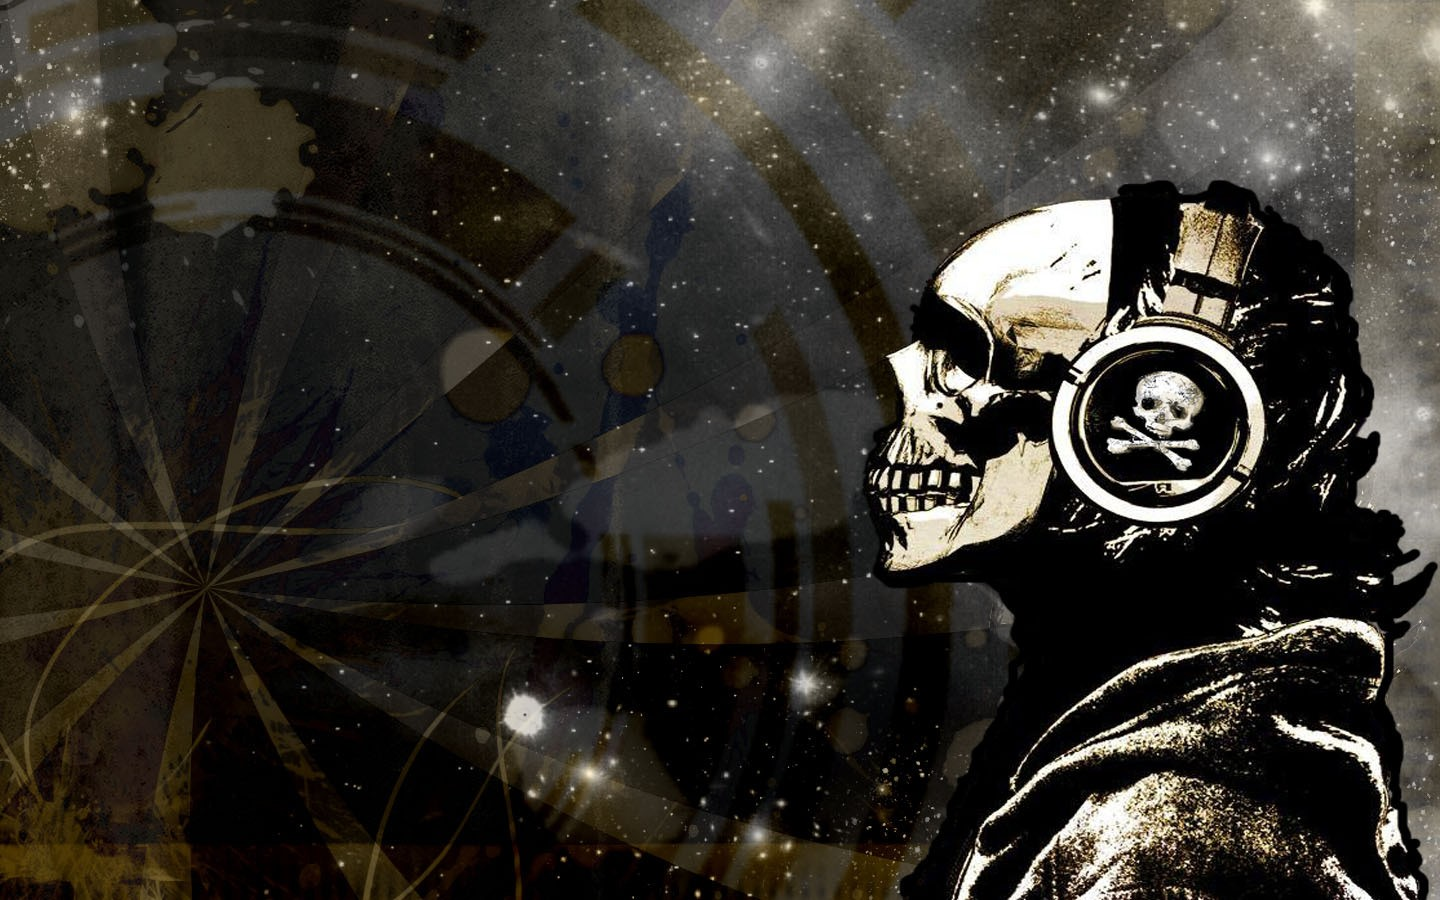 Group of cool skull wallpapers and music headphone anime headphones wallpapers desktop phone tablet awesome voltagebd Choice Image